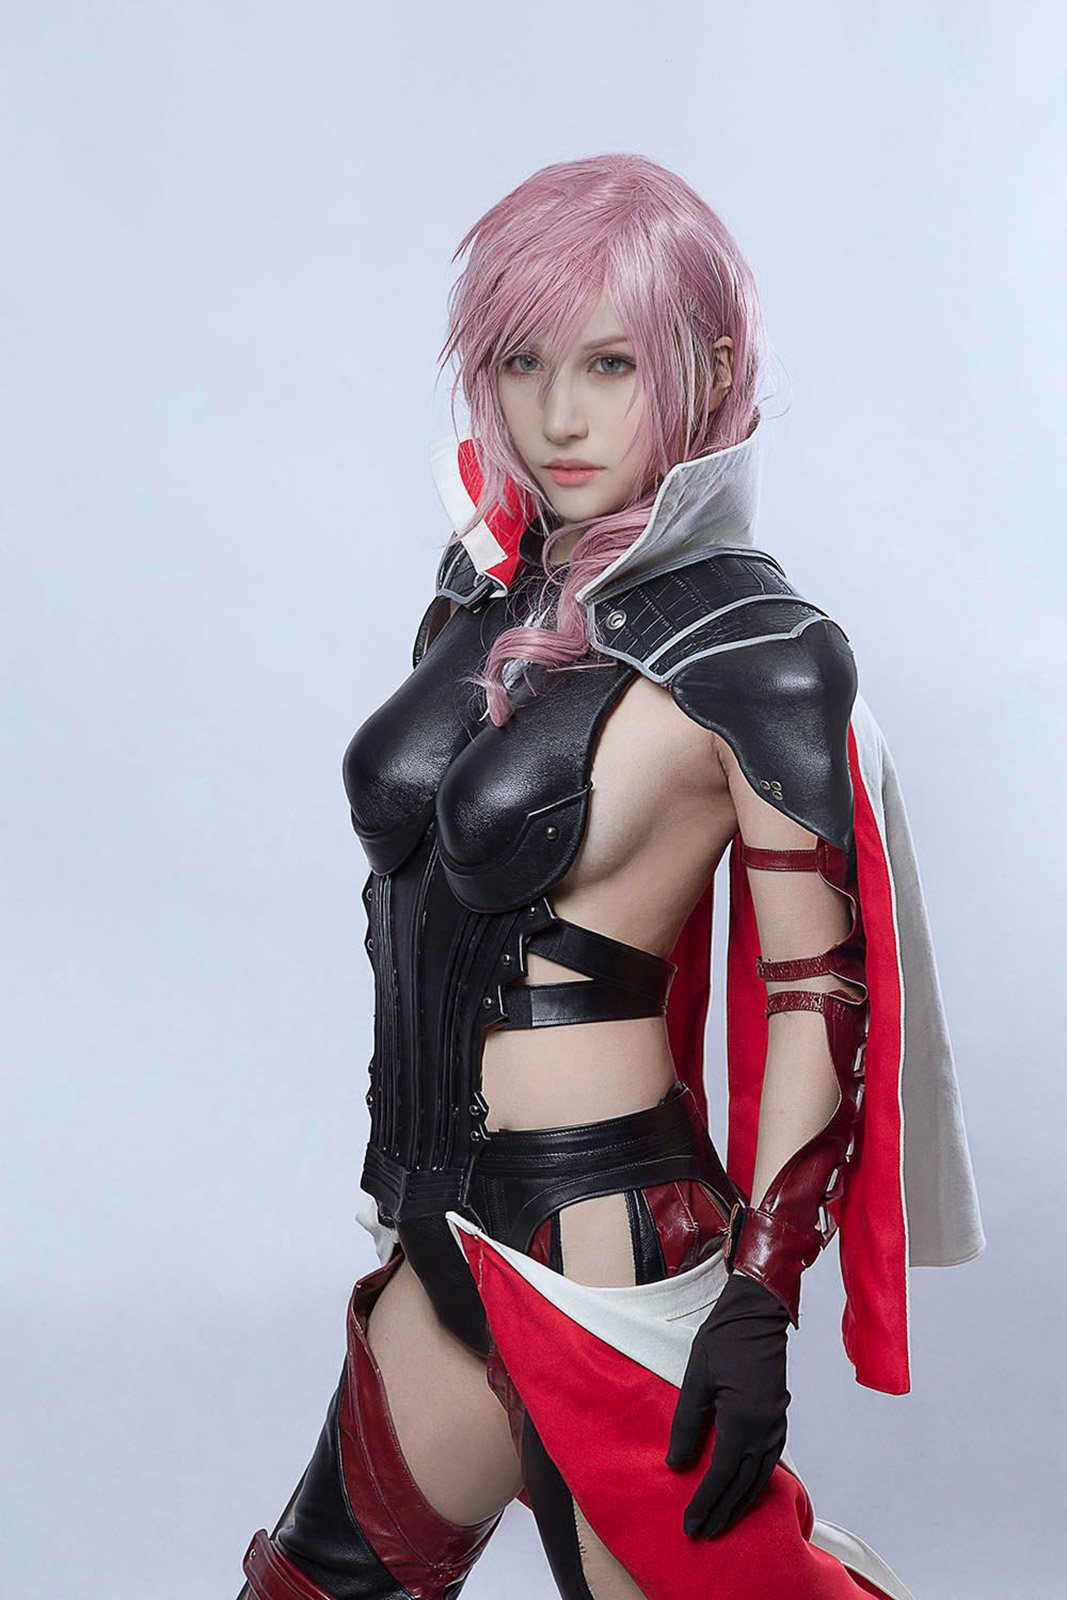 Lightning will free the souls of humanity in Final Fantasy XIII cosplay